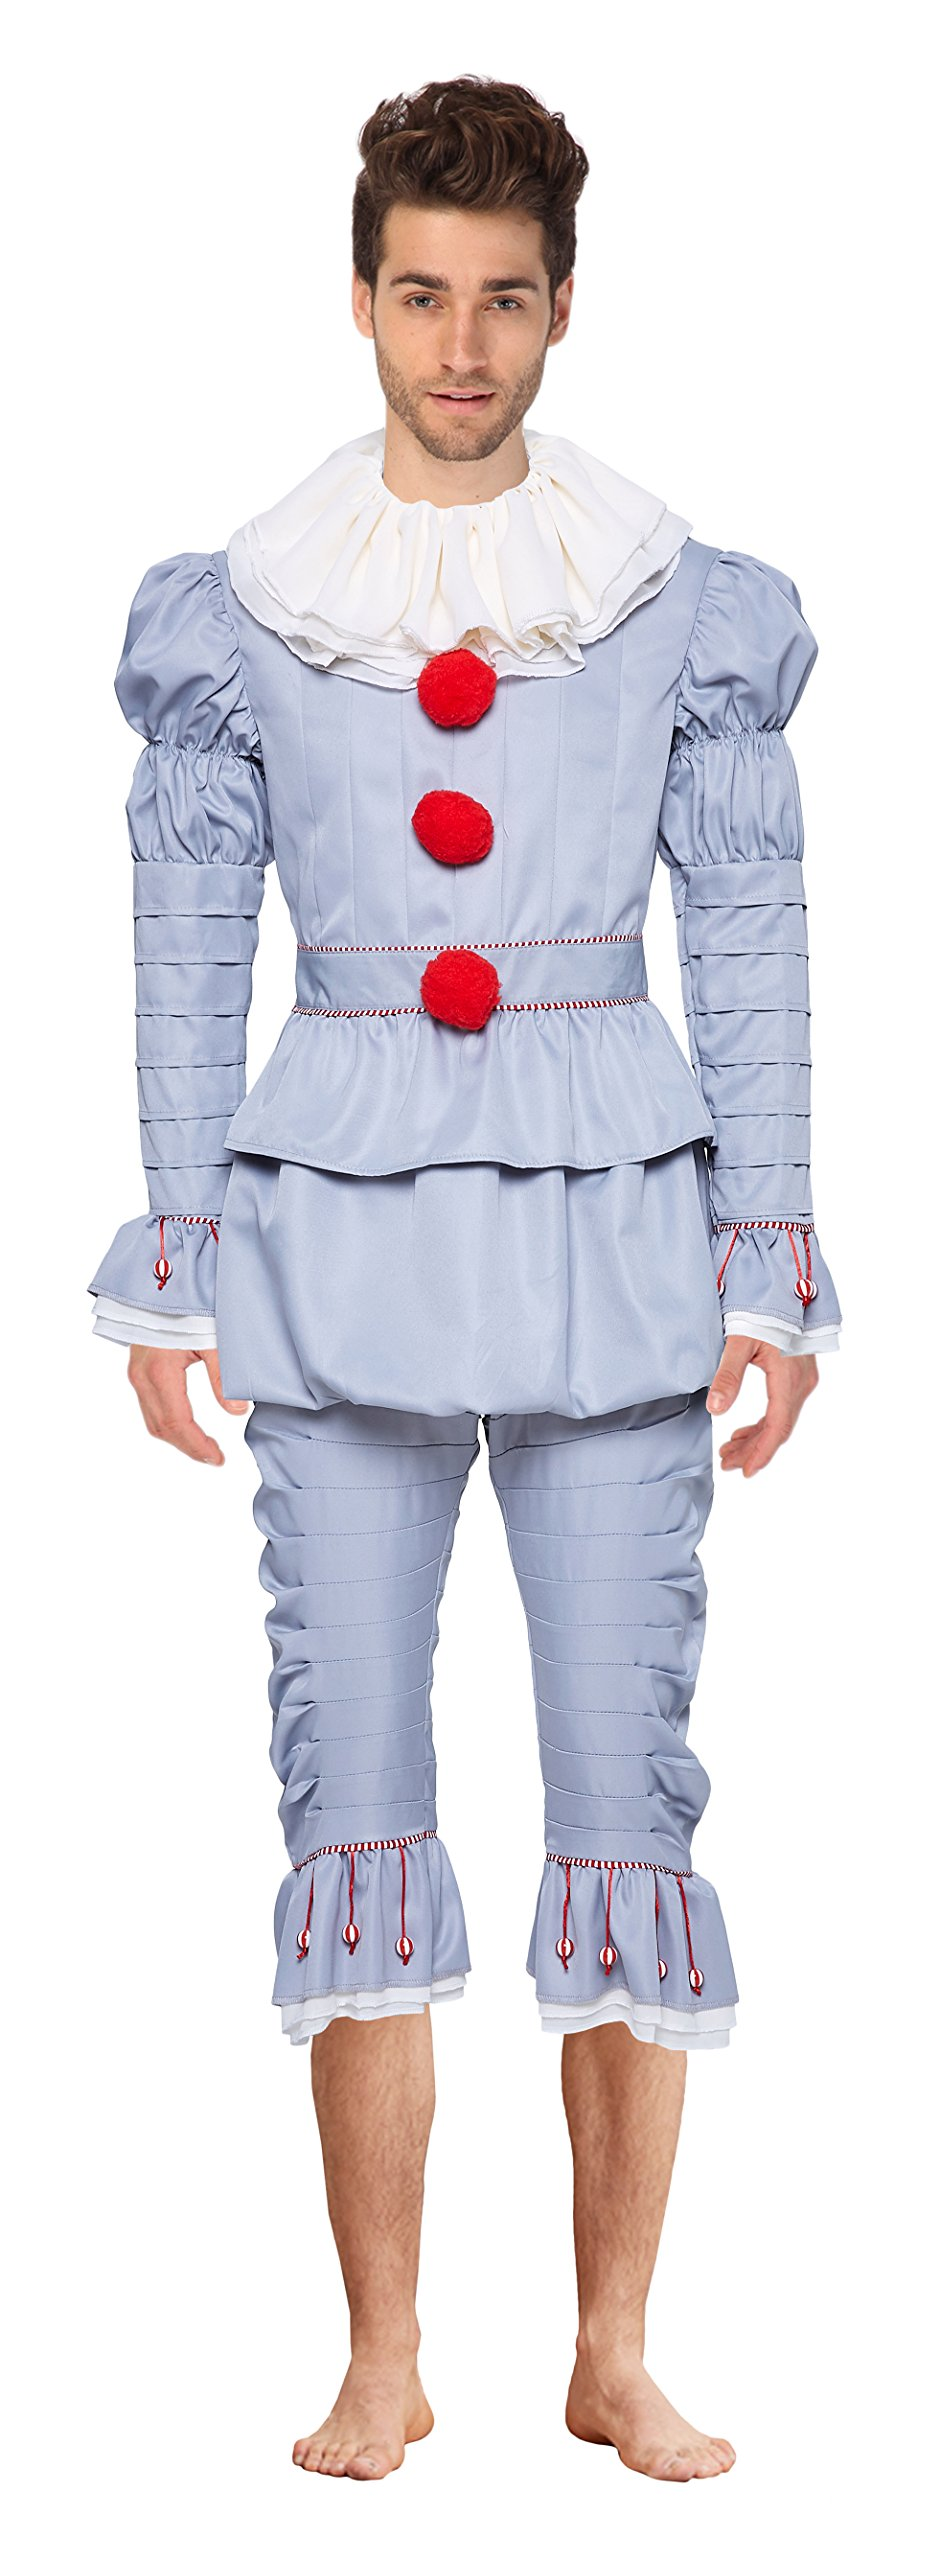 Quintion Anneao Women's Halloween Clown Cosplay Costumes Pennywise Costplay Outfit, L